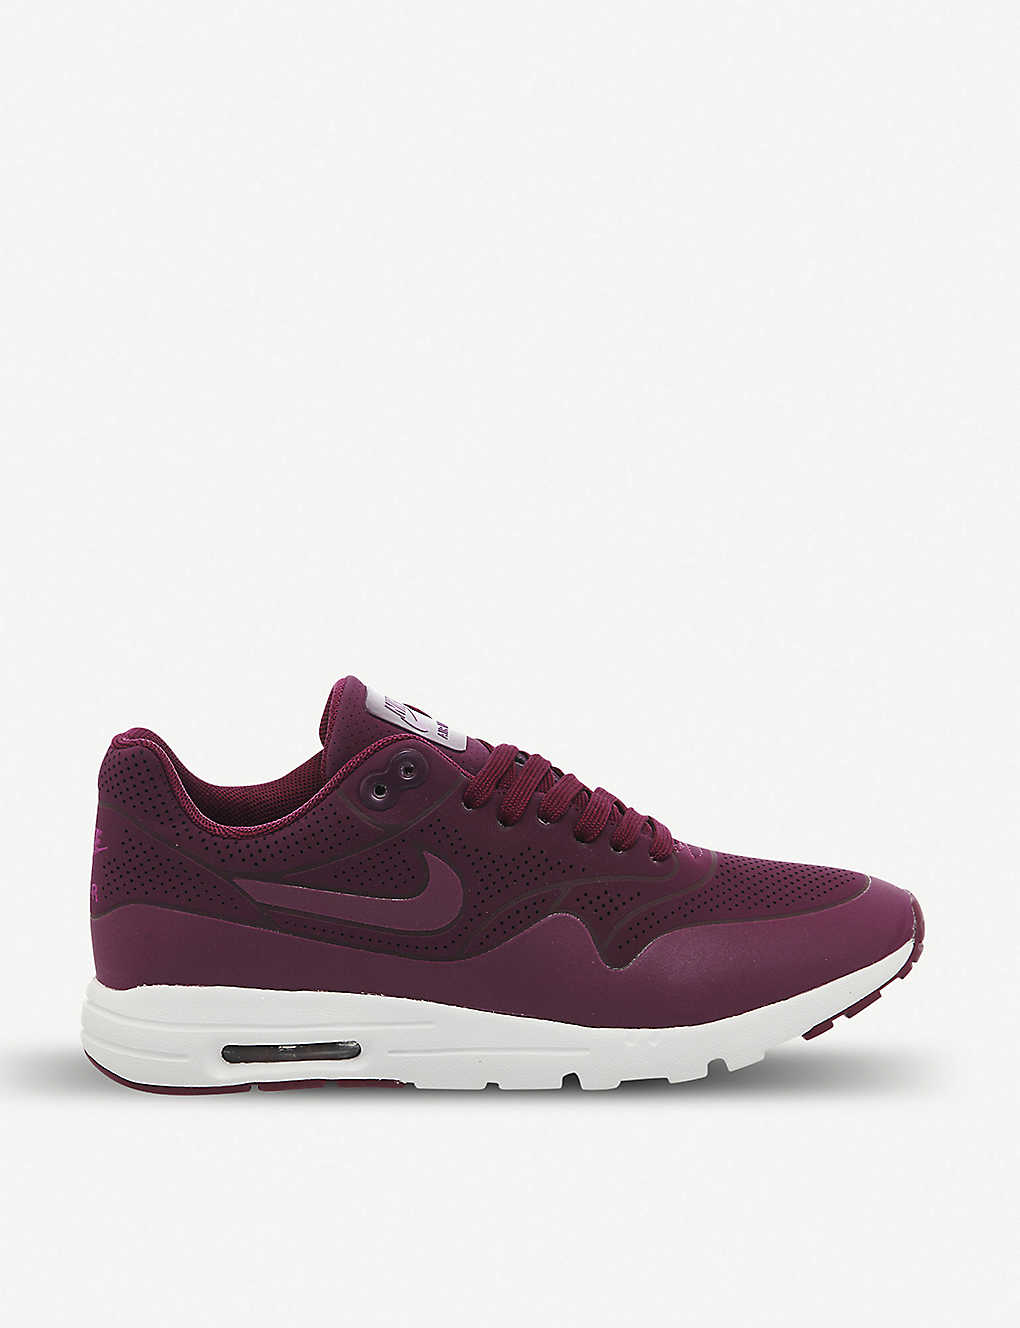 the latest 4e8f0 9d411 NIKE Air Max 1 Ultra Moire trainers